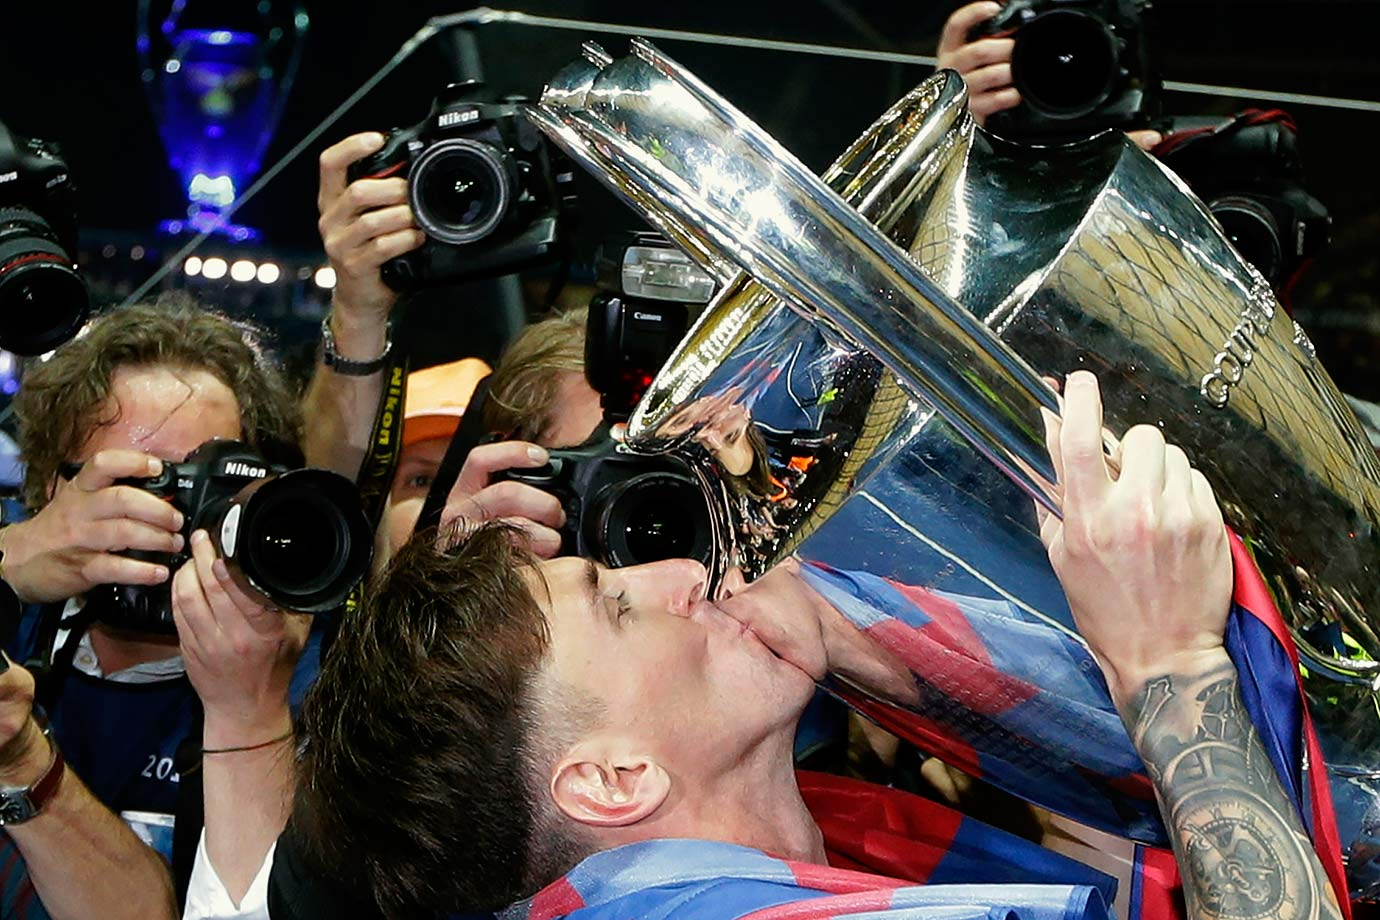 Barcelona's Lionel Messi kisses the trophy after the Champions League final match victory over Juventus F.C. on June 6, 2015 at the Olympiastadion in Berlin, Germany.